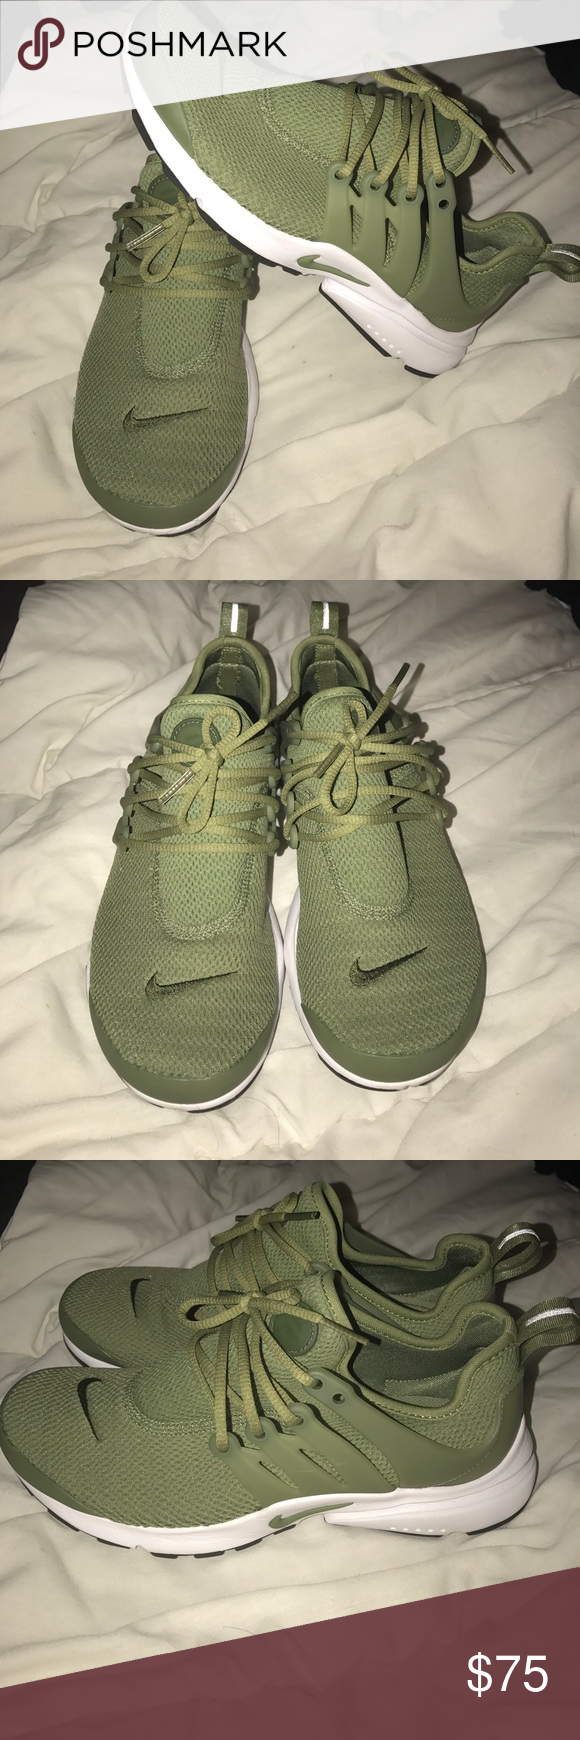 new style 3d305 9aec5 Women's Nike Air presto Beautiful olive green air prestos ...